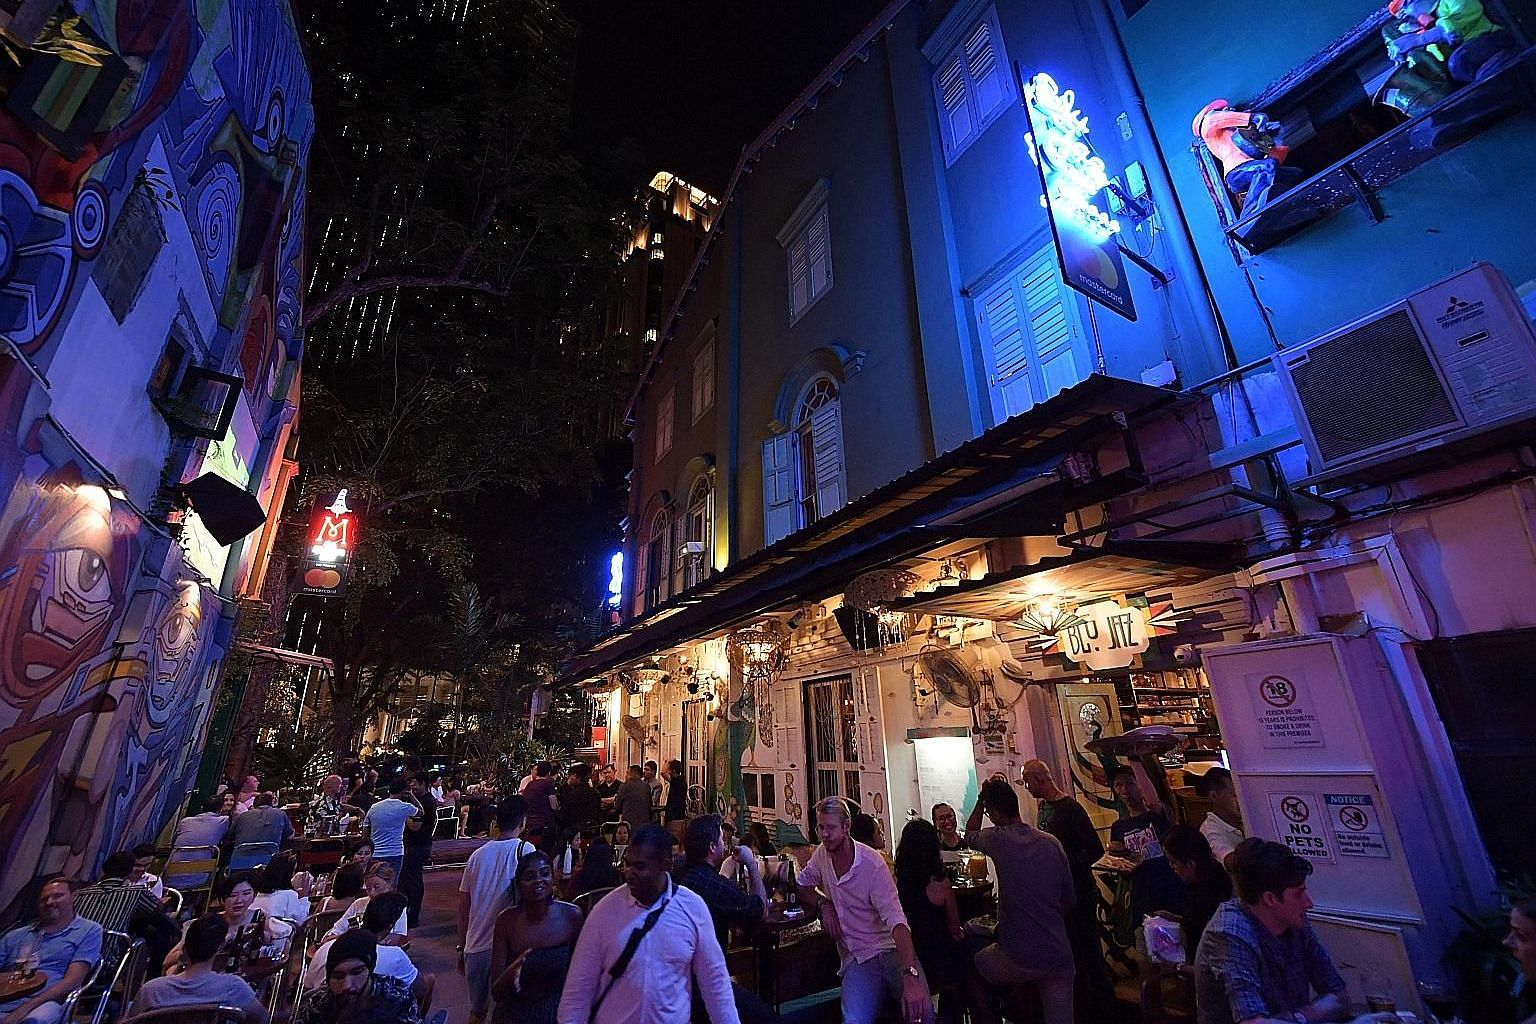 Blue Jaz, a three-level live-music nightspot in Bali Lane, is packed on most Friday nights and a wide range of genres is played, ranging from experimental jazz to pop and rock, or even a mix of them. The venue cannot hold live performances from Feb 1